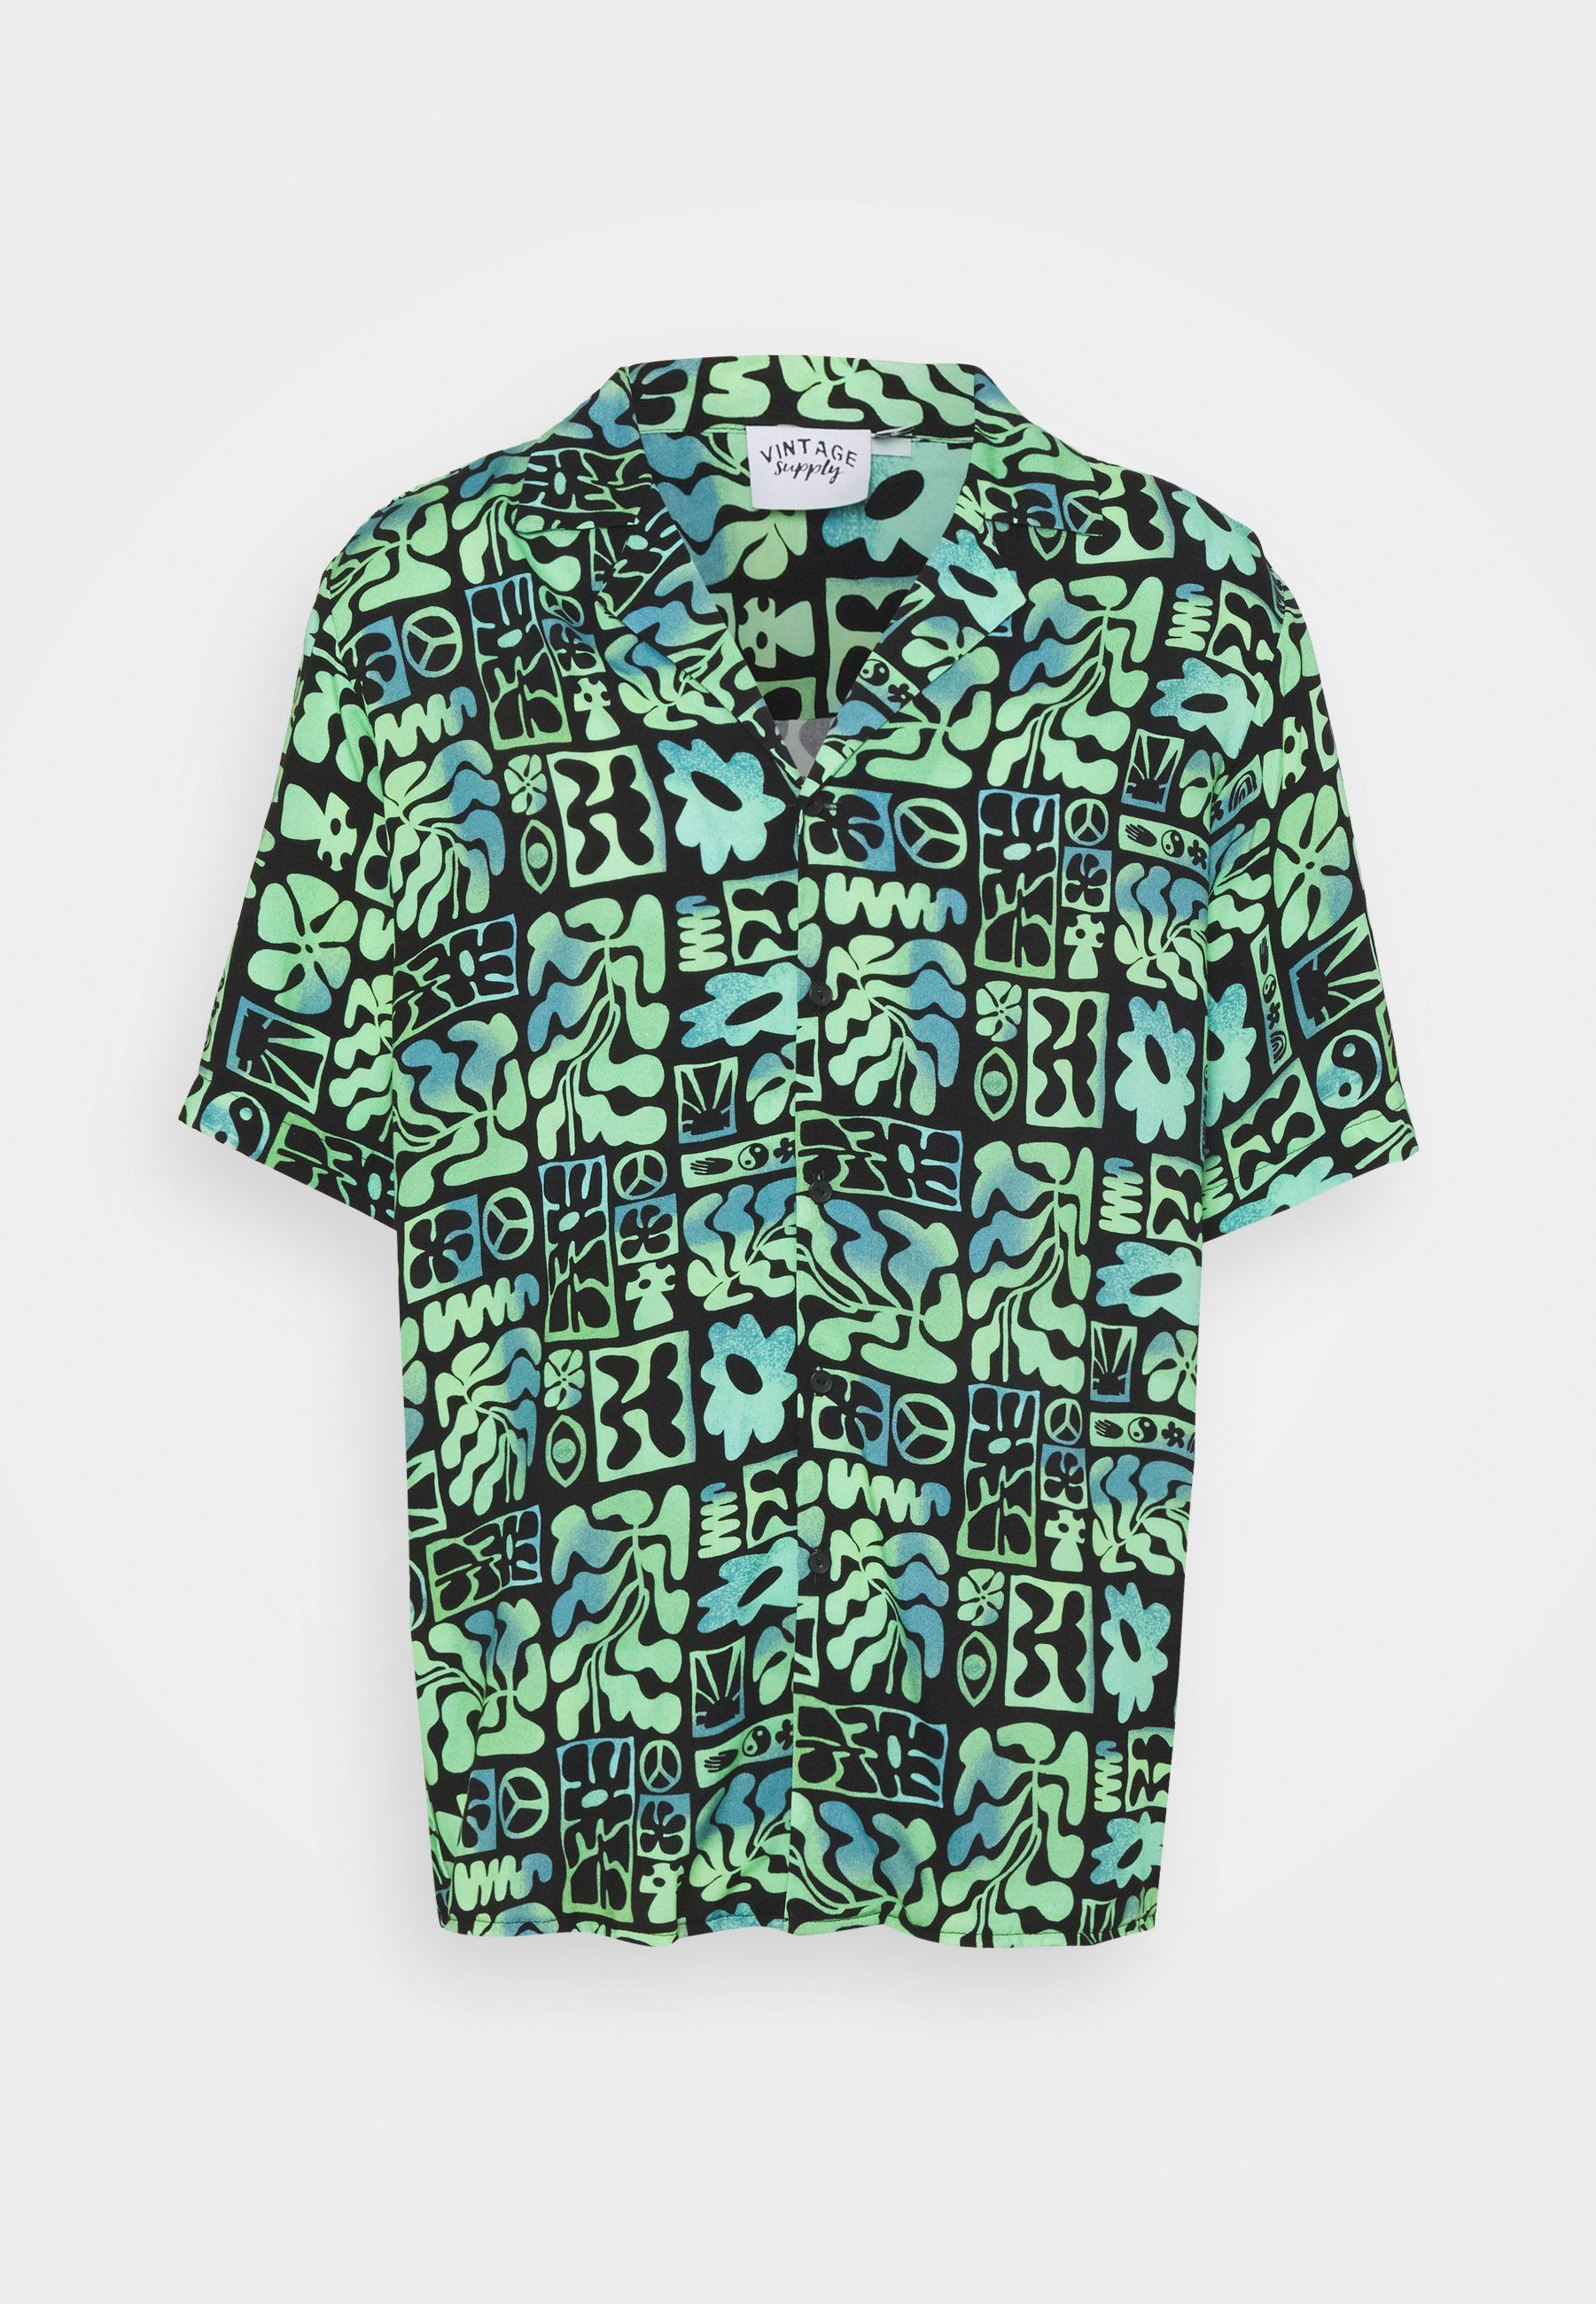 Homme REVERE SHIRT IN OMBRE ABSTRACT PRINT UNISEX - Chemise